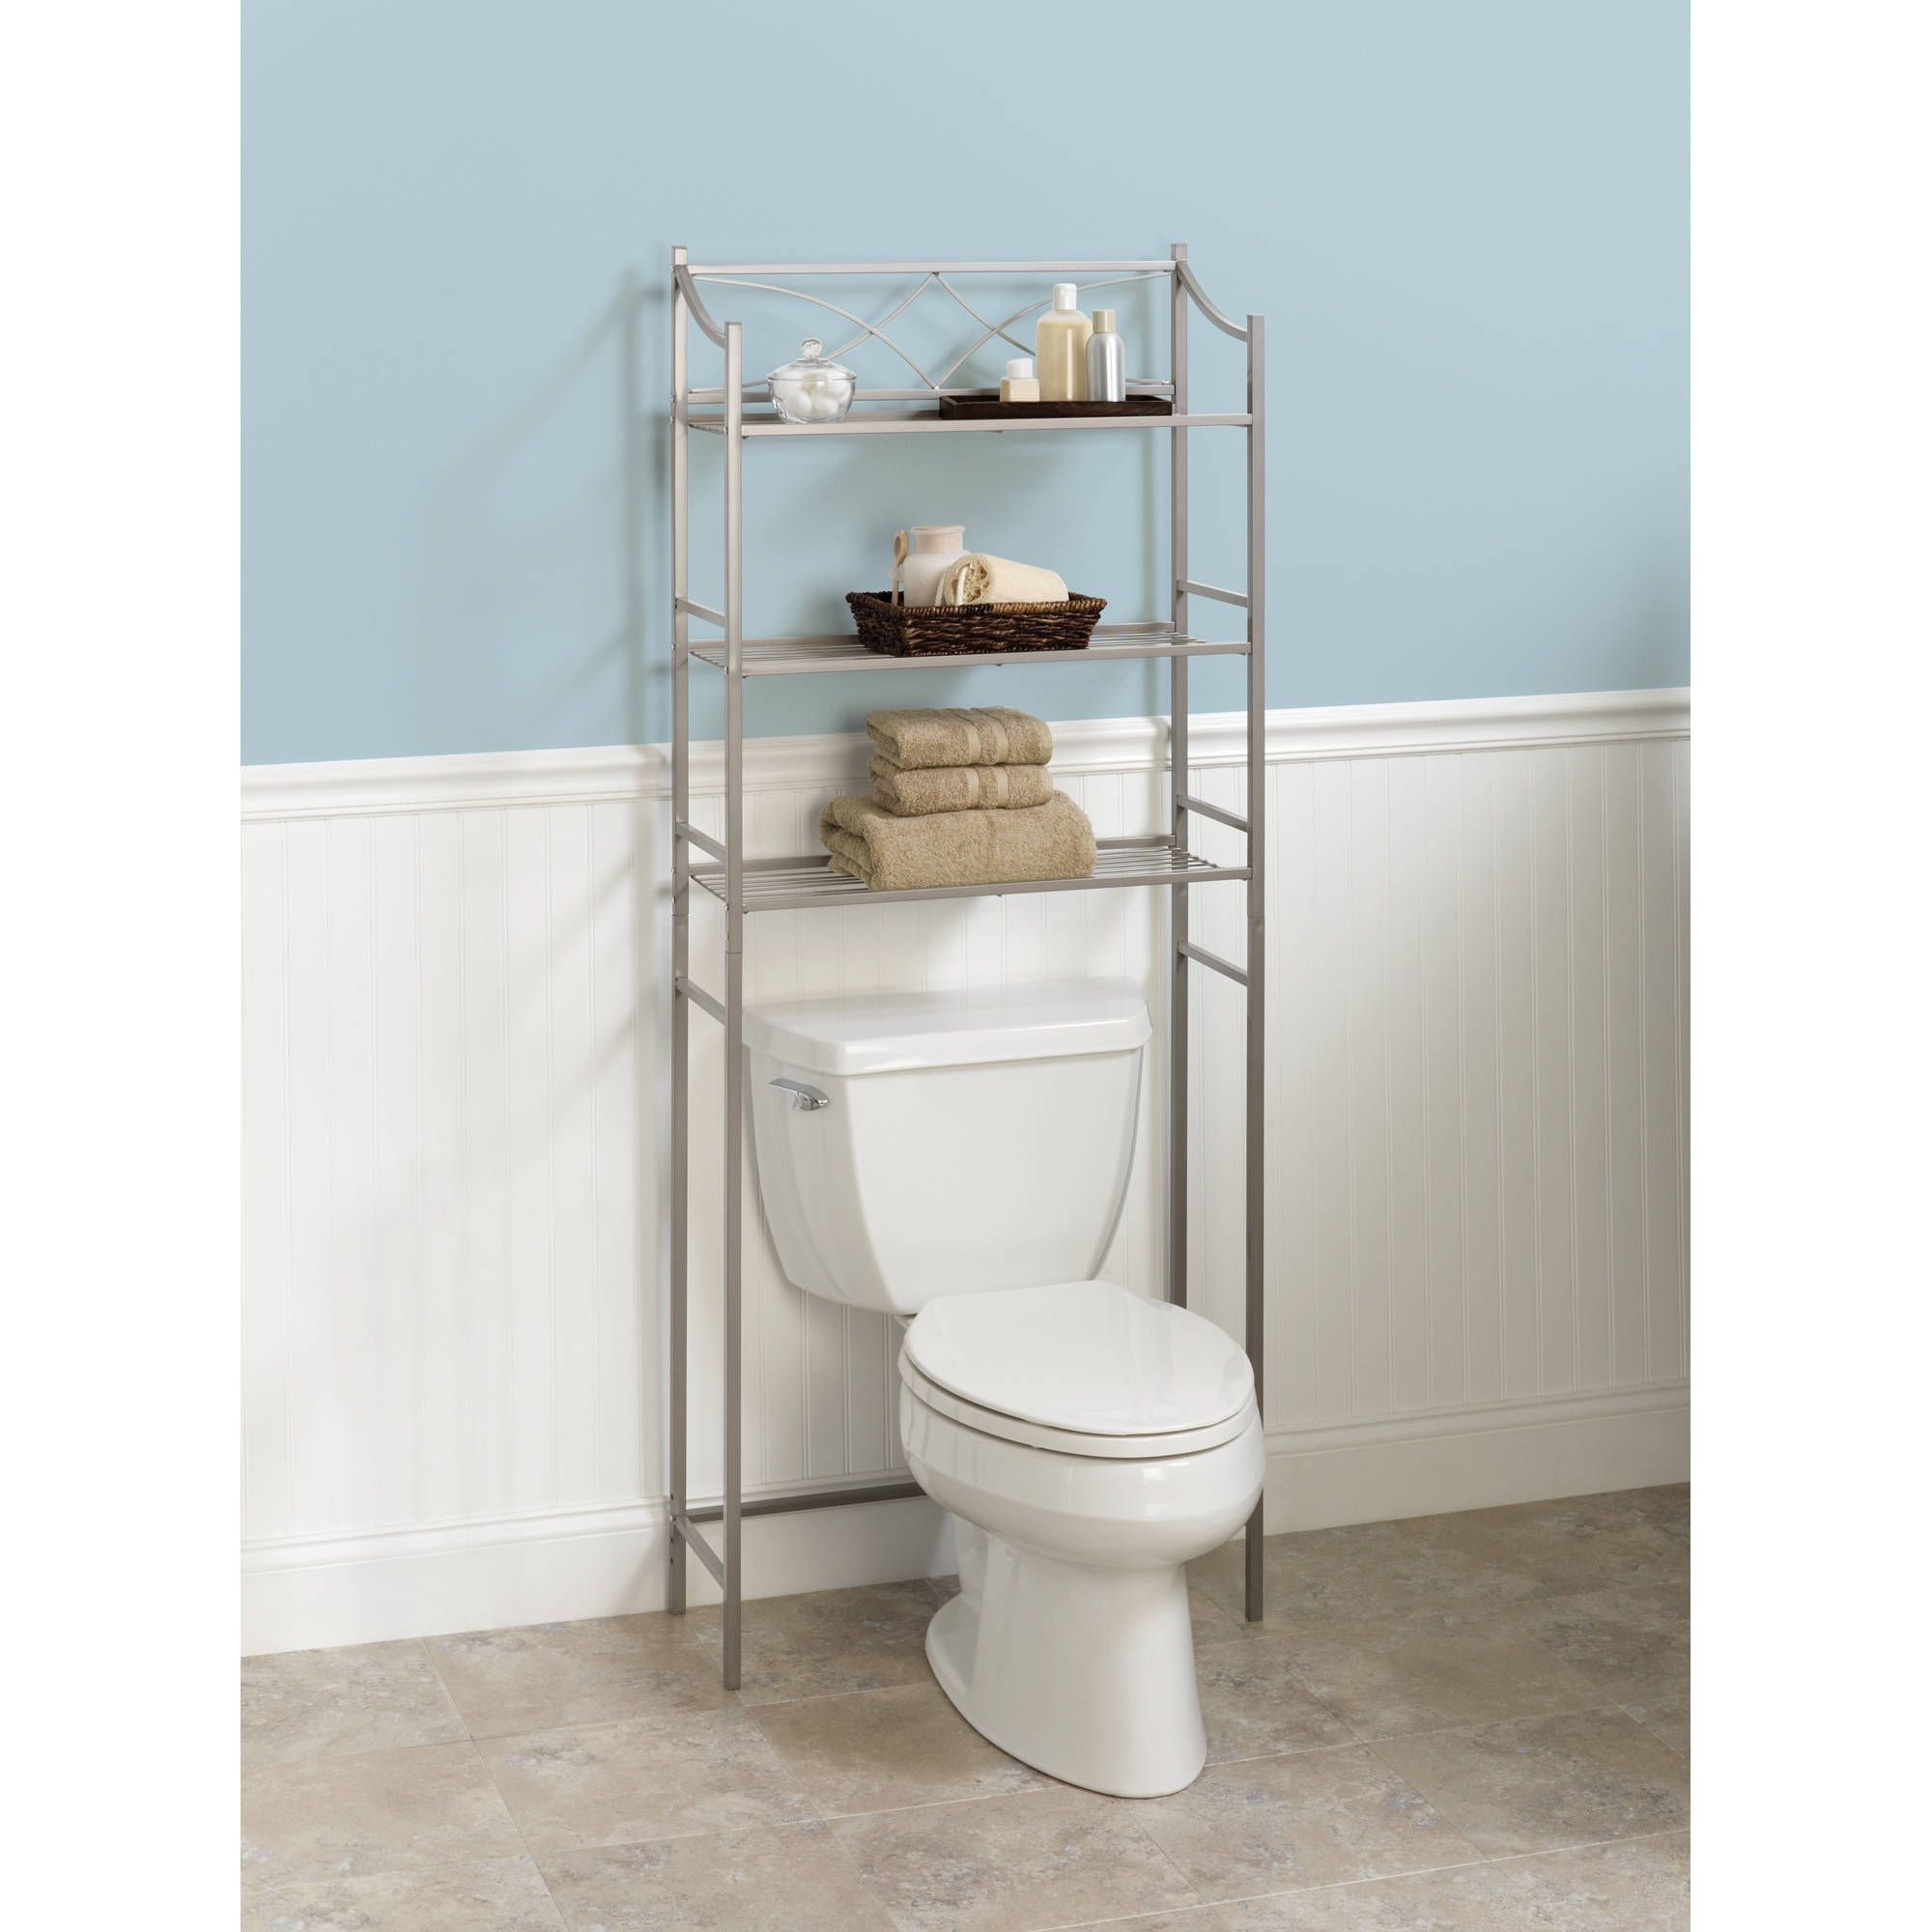 space saver over toilet shelves space saver over toilet shelves home decorators collection hampton harbor 30 in w space saver in 1000 x 1000 space saver ov - Over The Toilet Space Saver